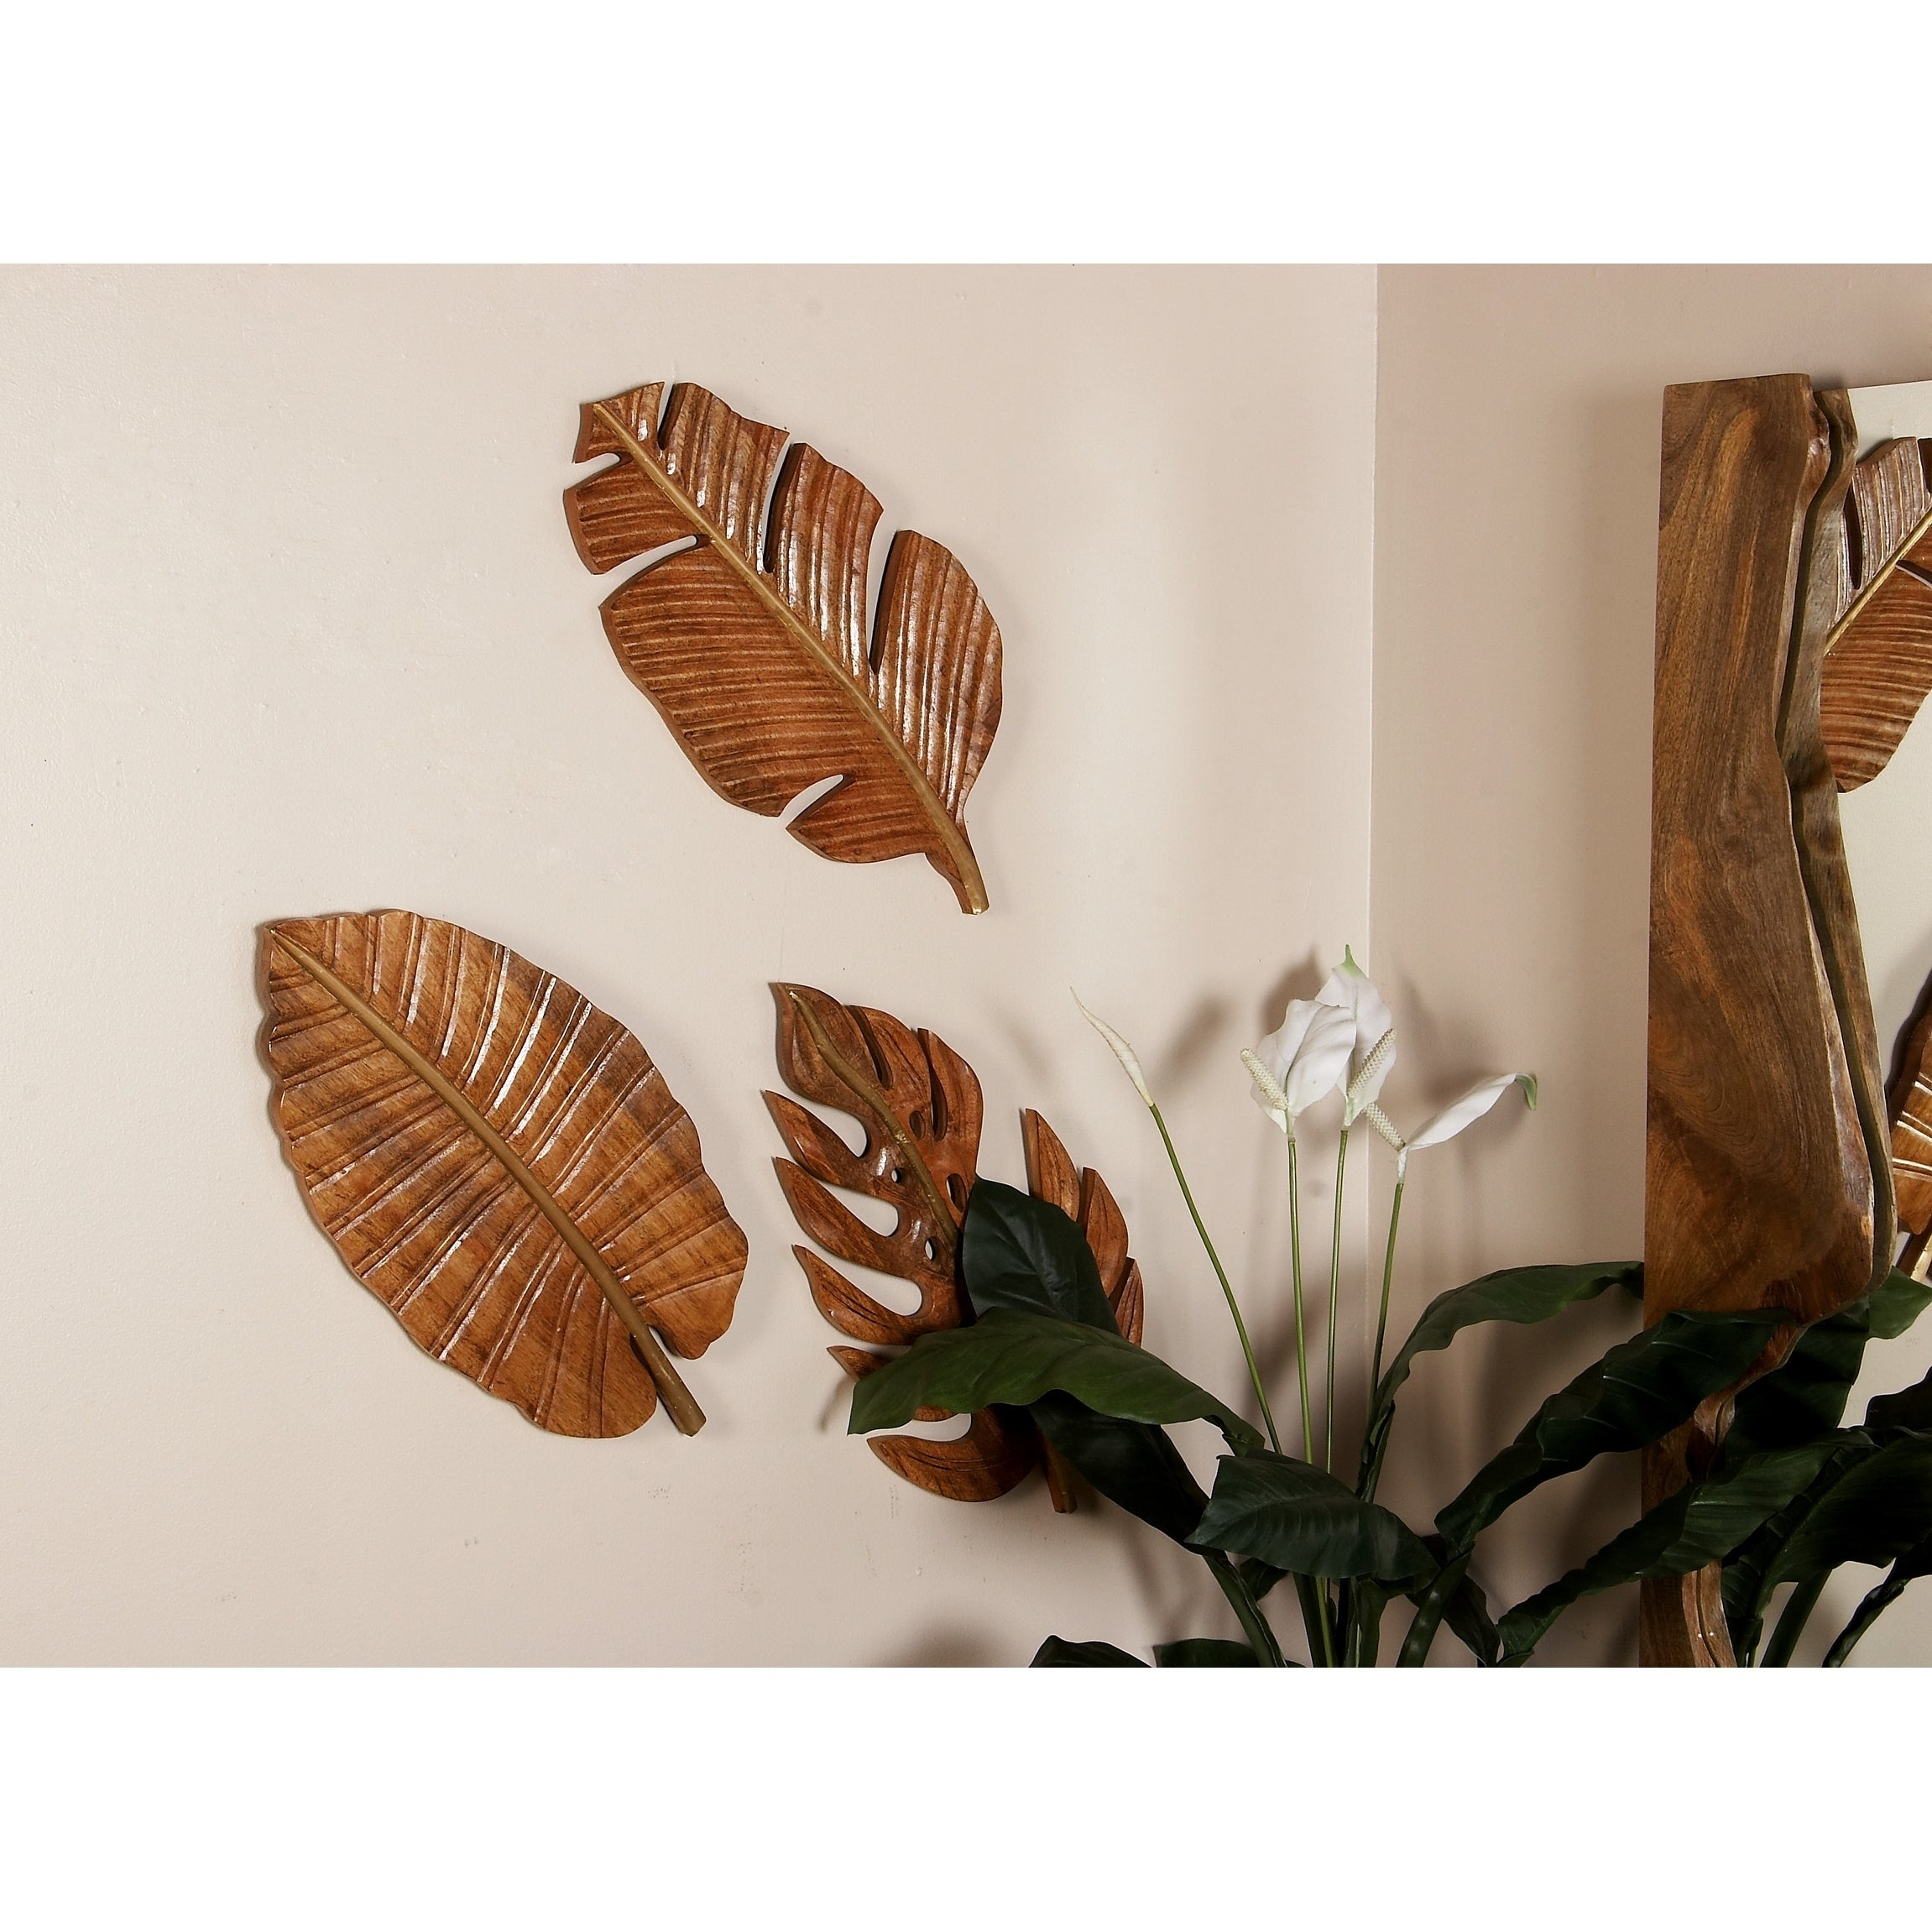 Shop Carved Wood 12 X 24 Inch Leaf Wall Art Set Of 3 By Studio 350 On Sale Overstock 20444868